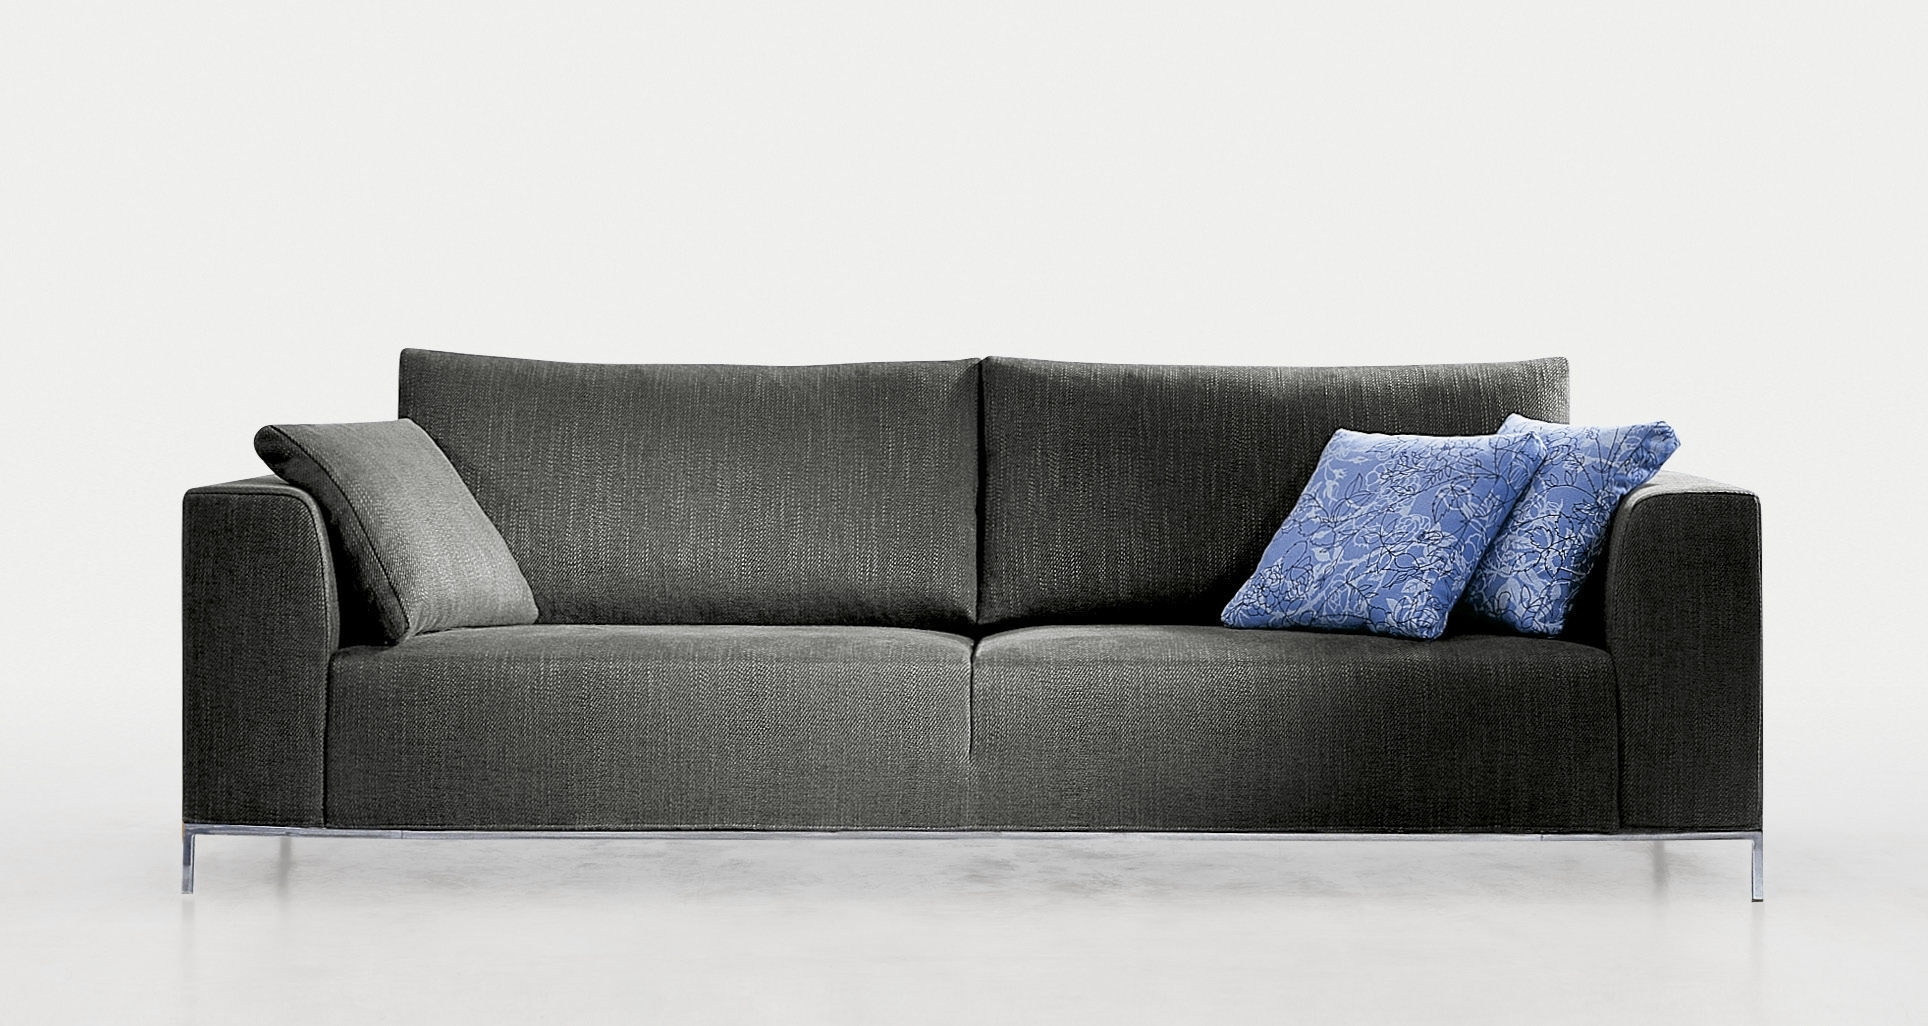 Sofas With Removable Cover Within Preferred Contemporary Sofa / Fabric / 2 Seater / With Removable Cover (View 8 of 15)